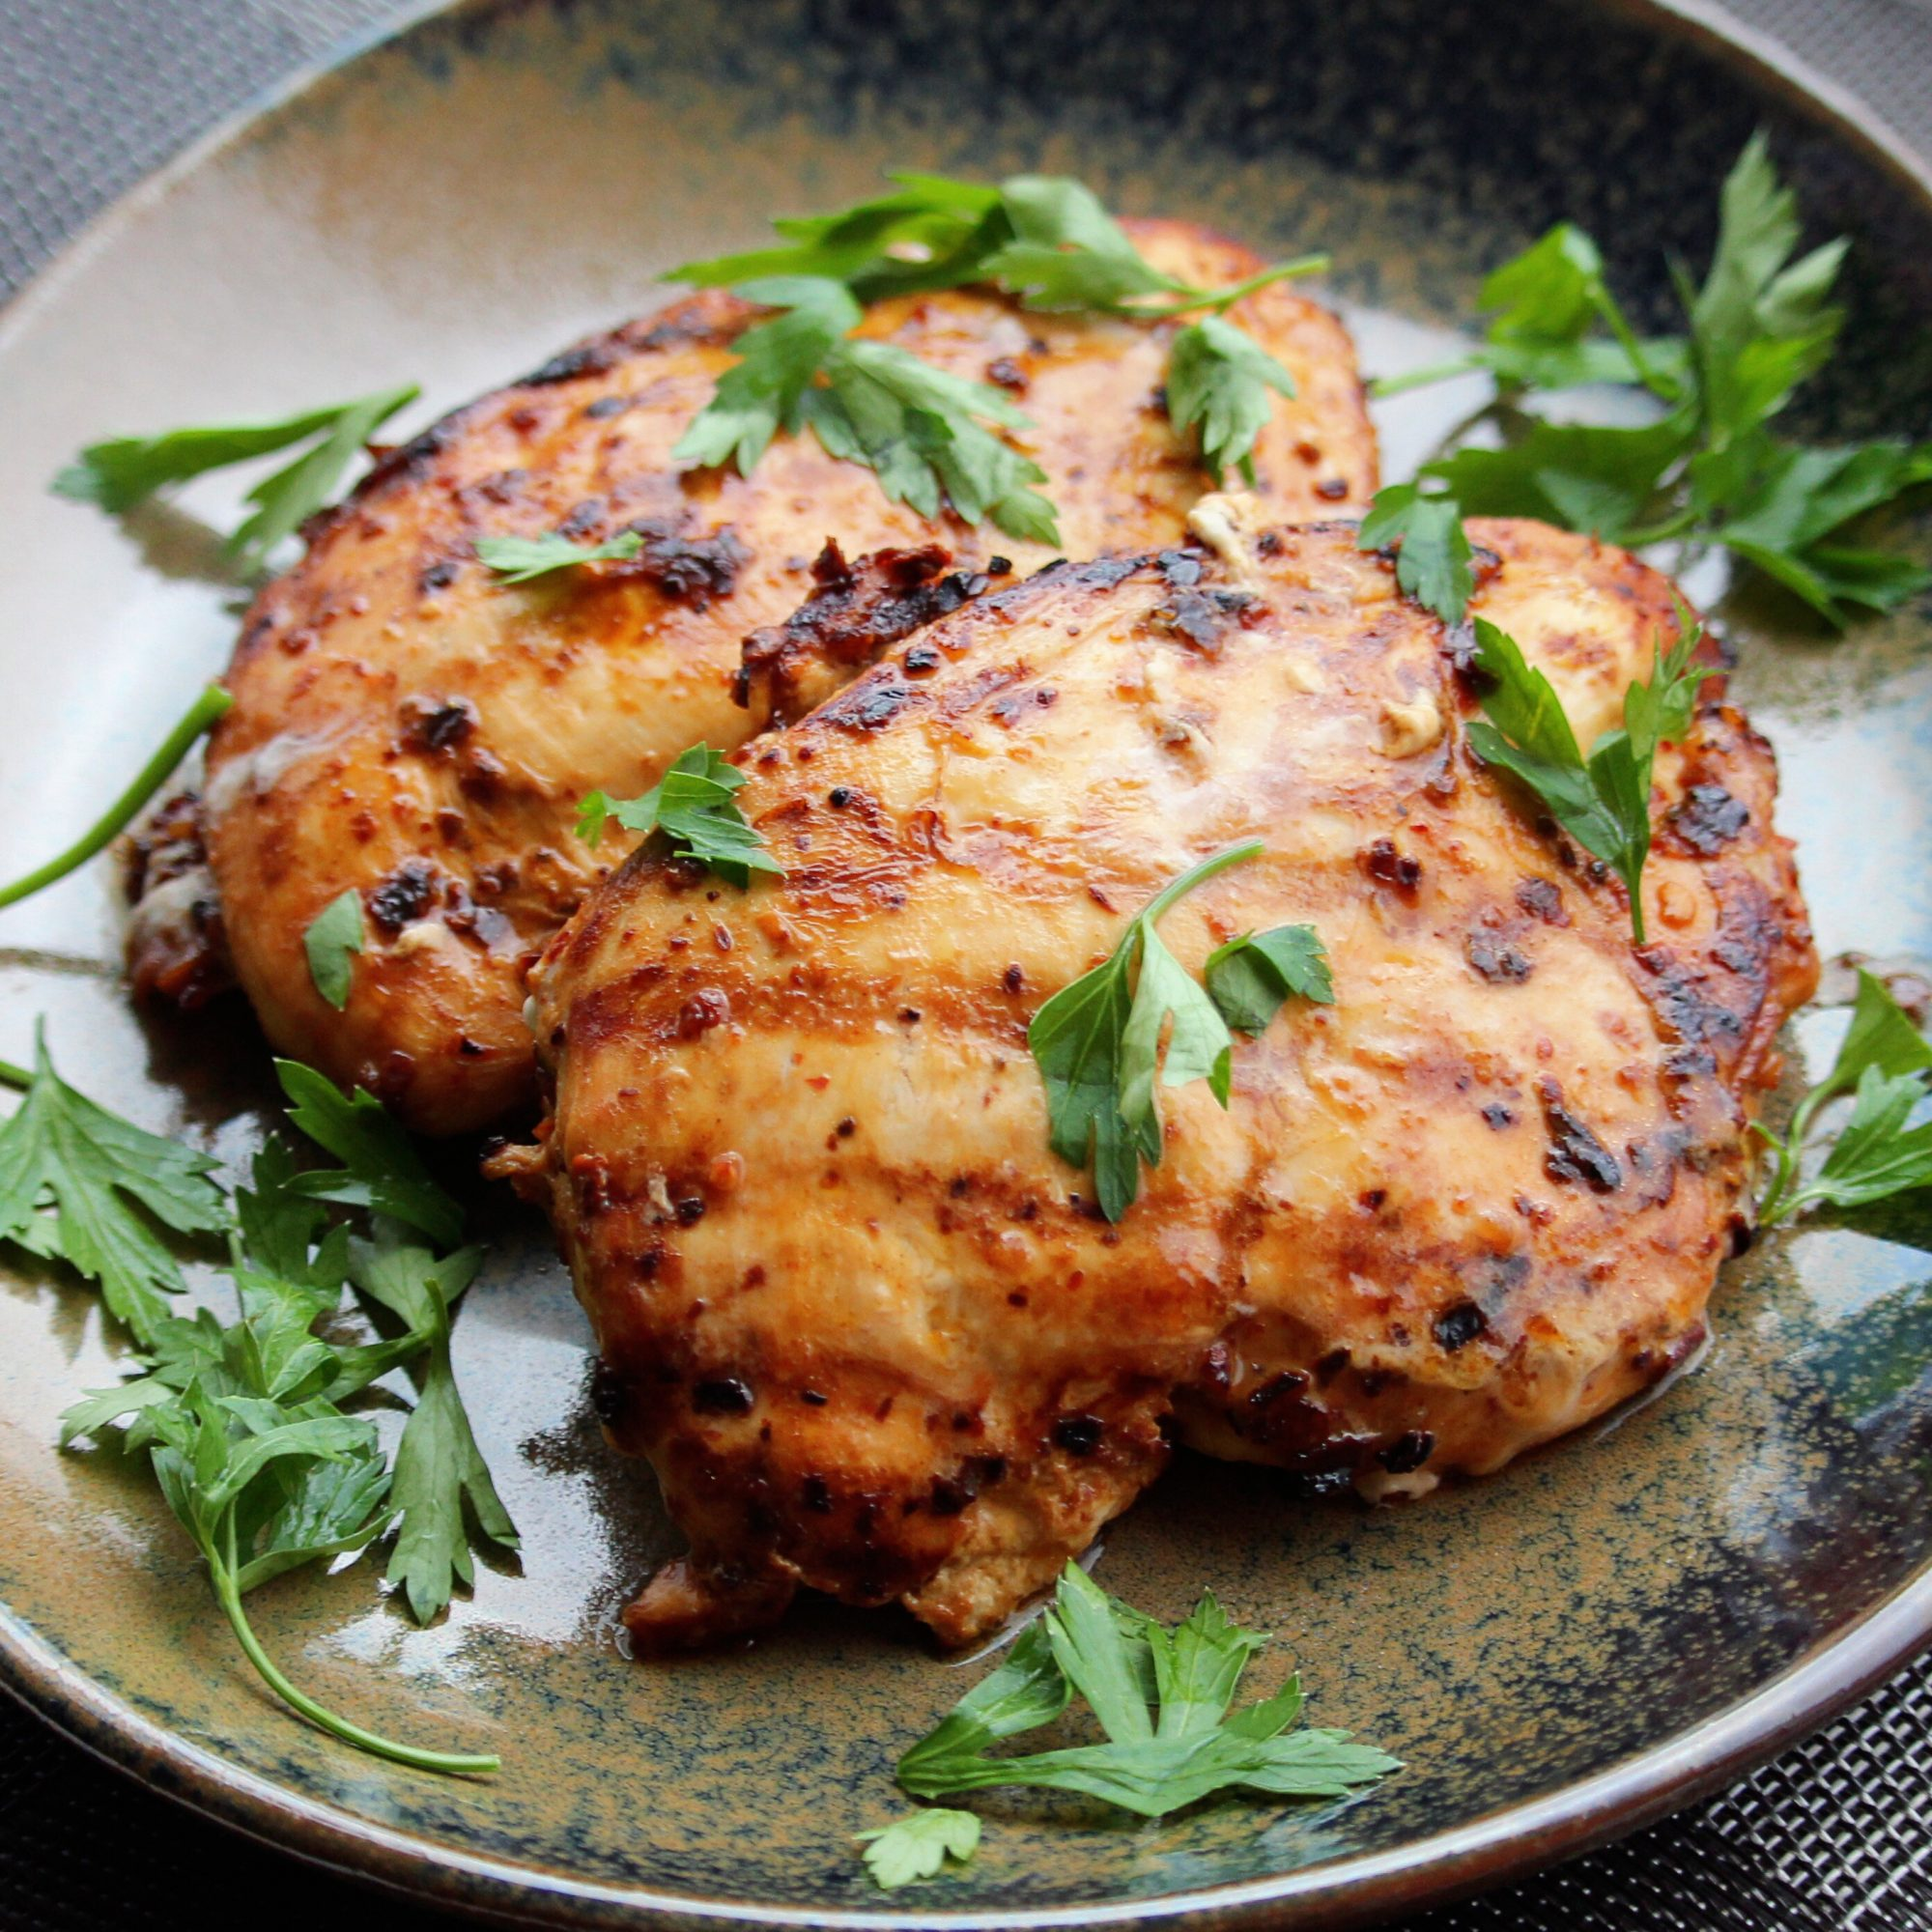 chicken thighs with chipotle seasoning and herb garnish